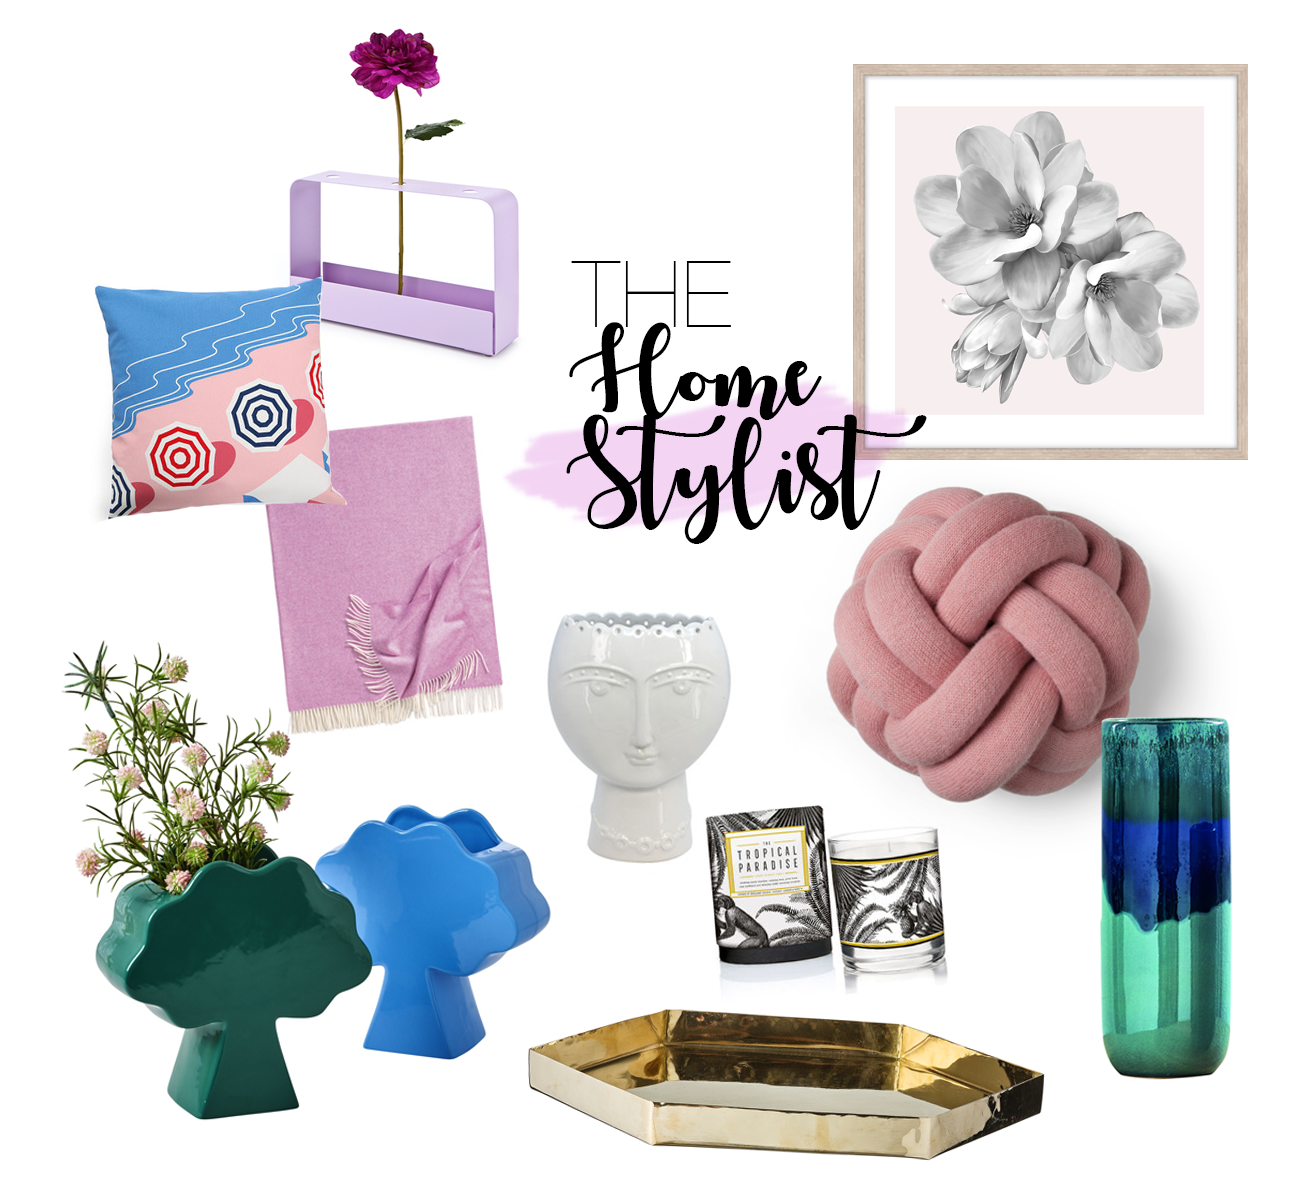 Christmas gift ideas for the Home Stylist